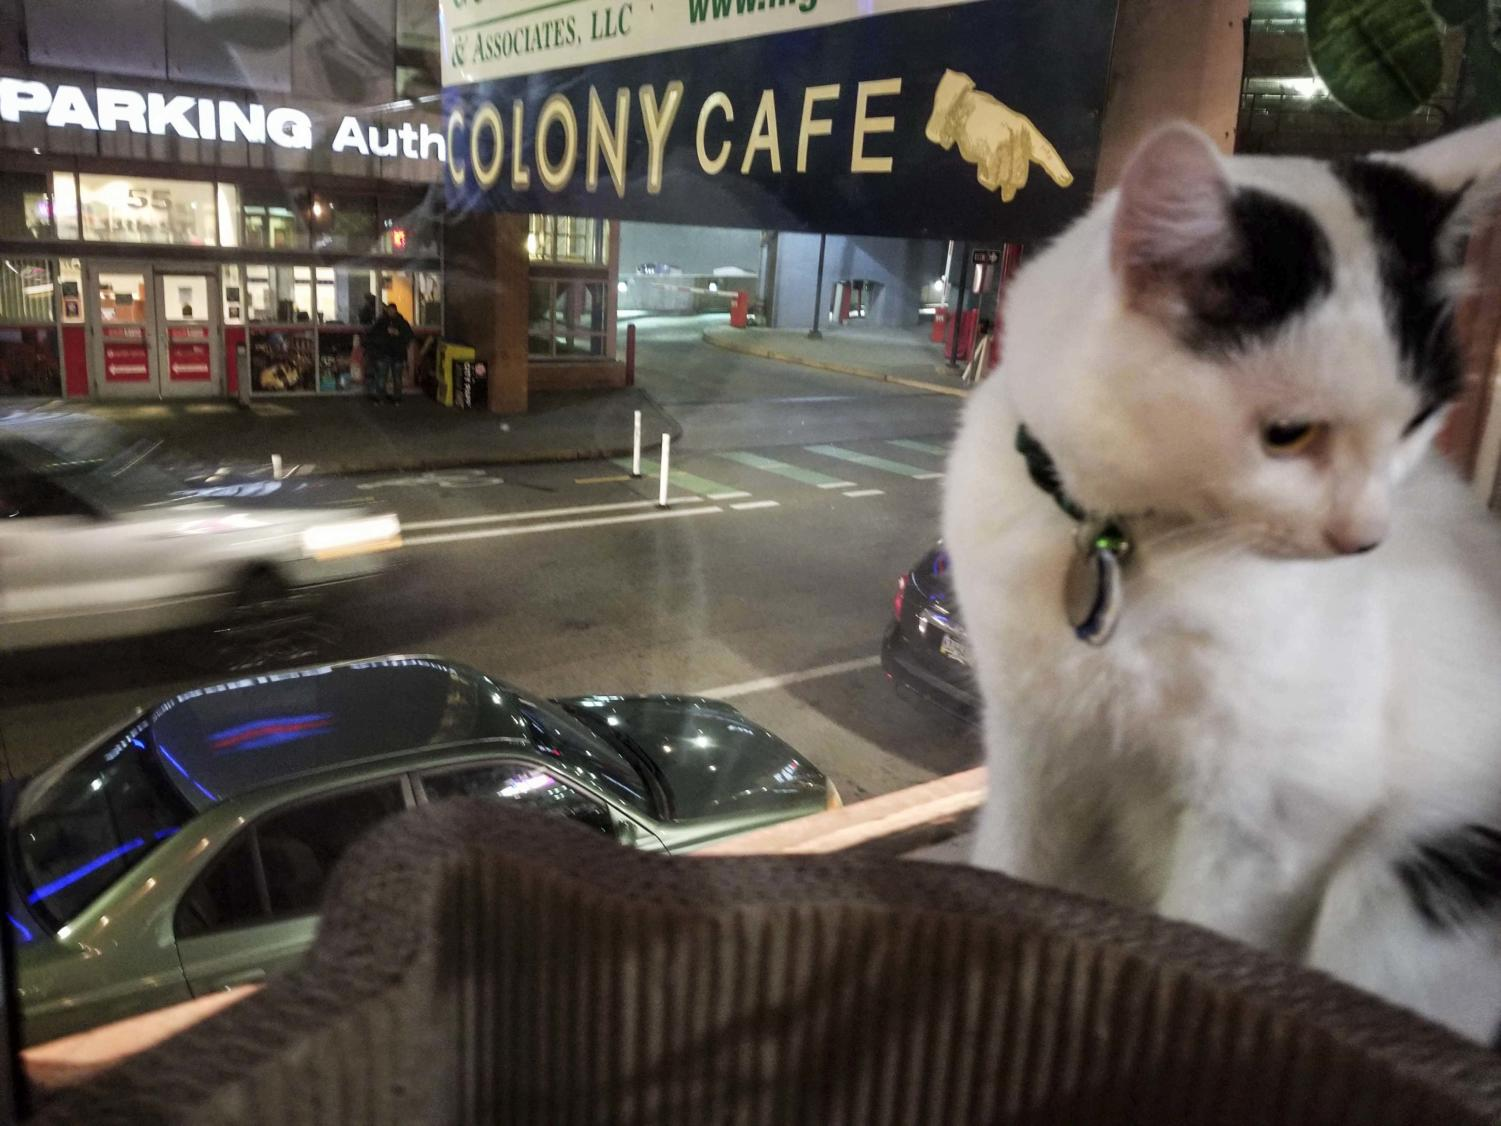 Colony Cafe, located downtown, allows you to study in the same room as adoptable cats.